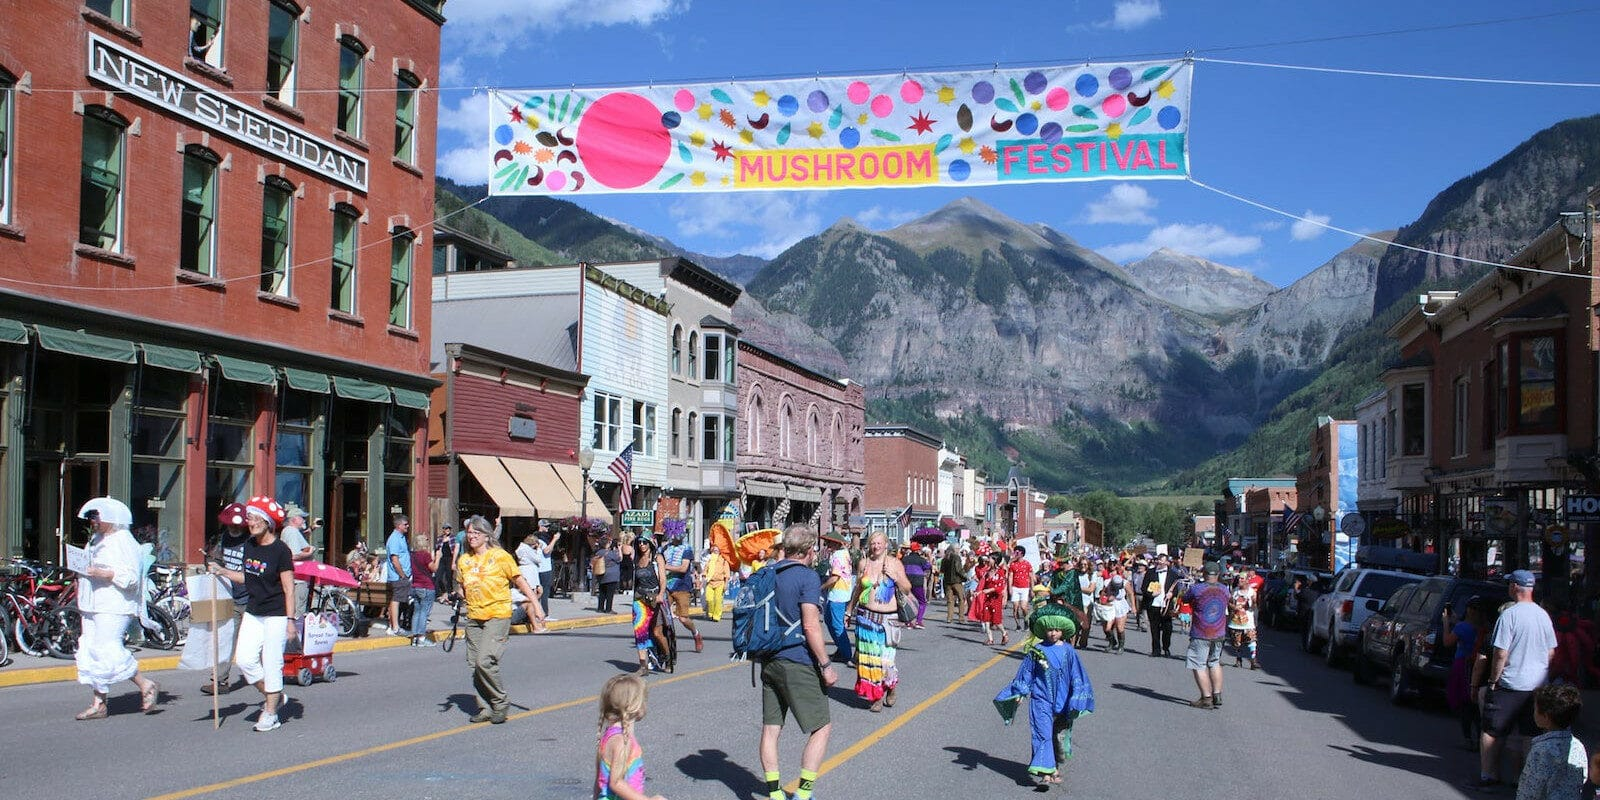 Image of the banner and festival-goers at the Telluride Mushroom Festival in Colorado